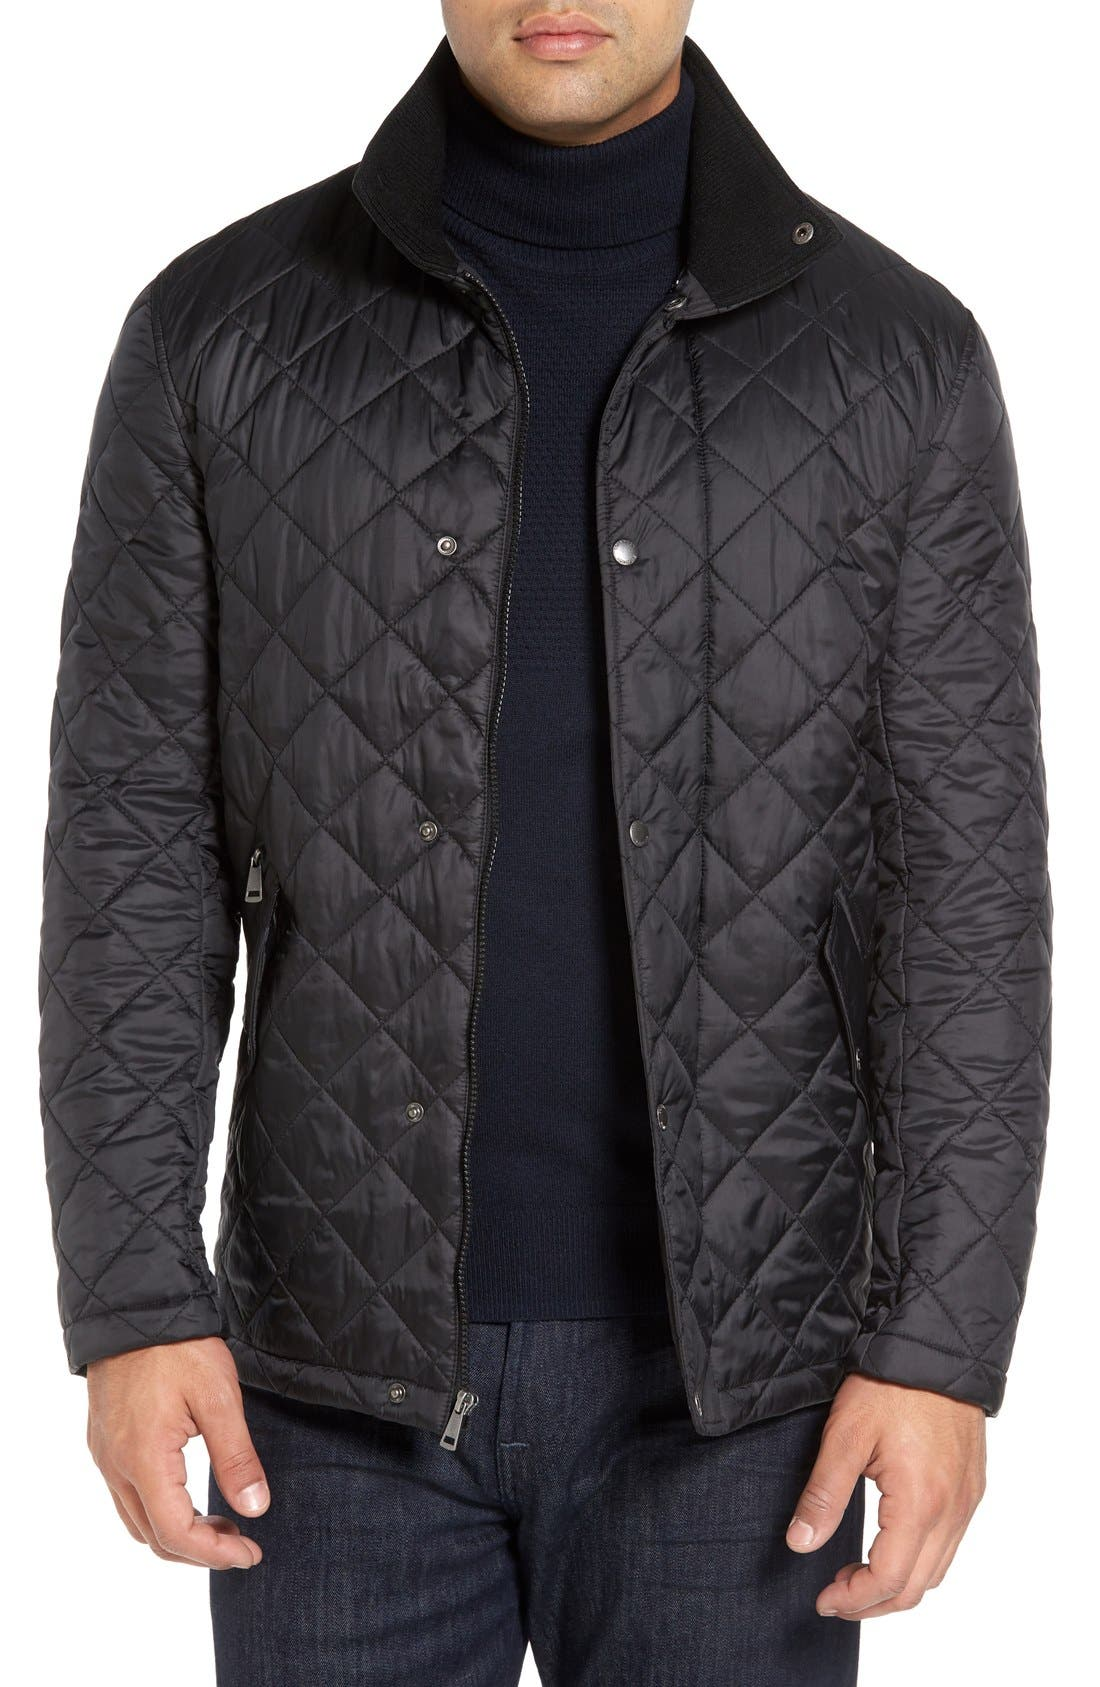 Diamond Quilted Jacket,                         Main,                         color, BLACK